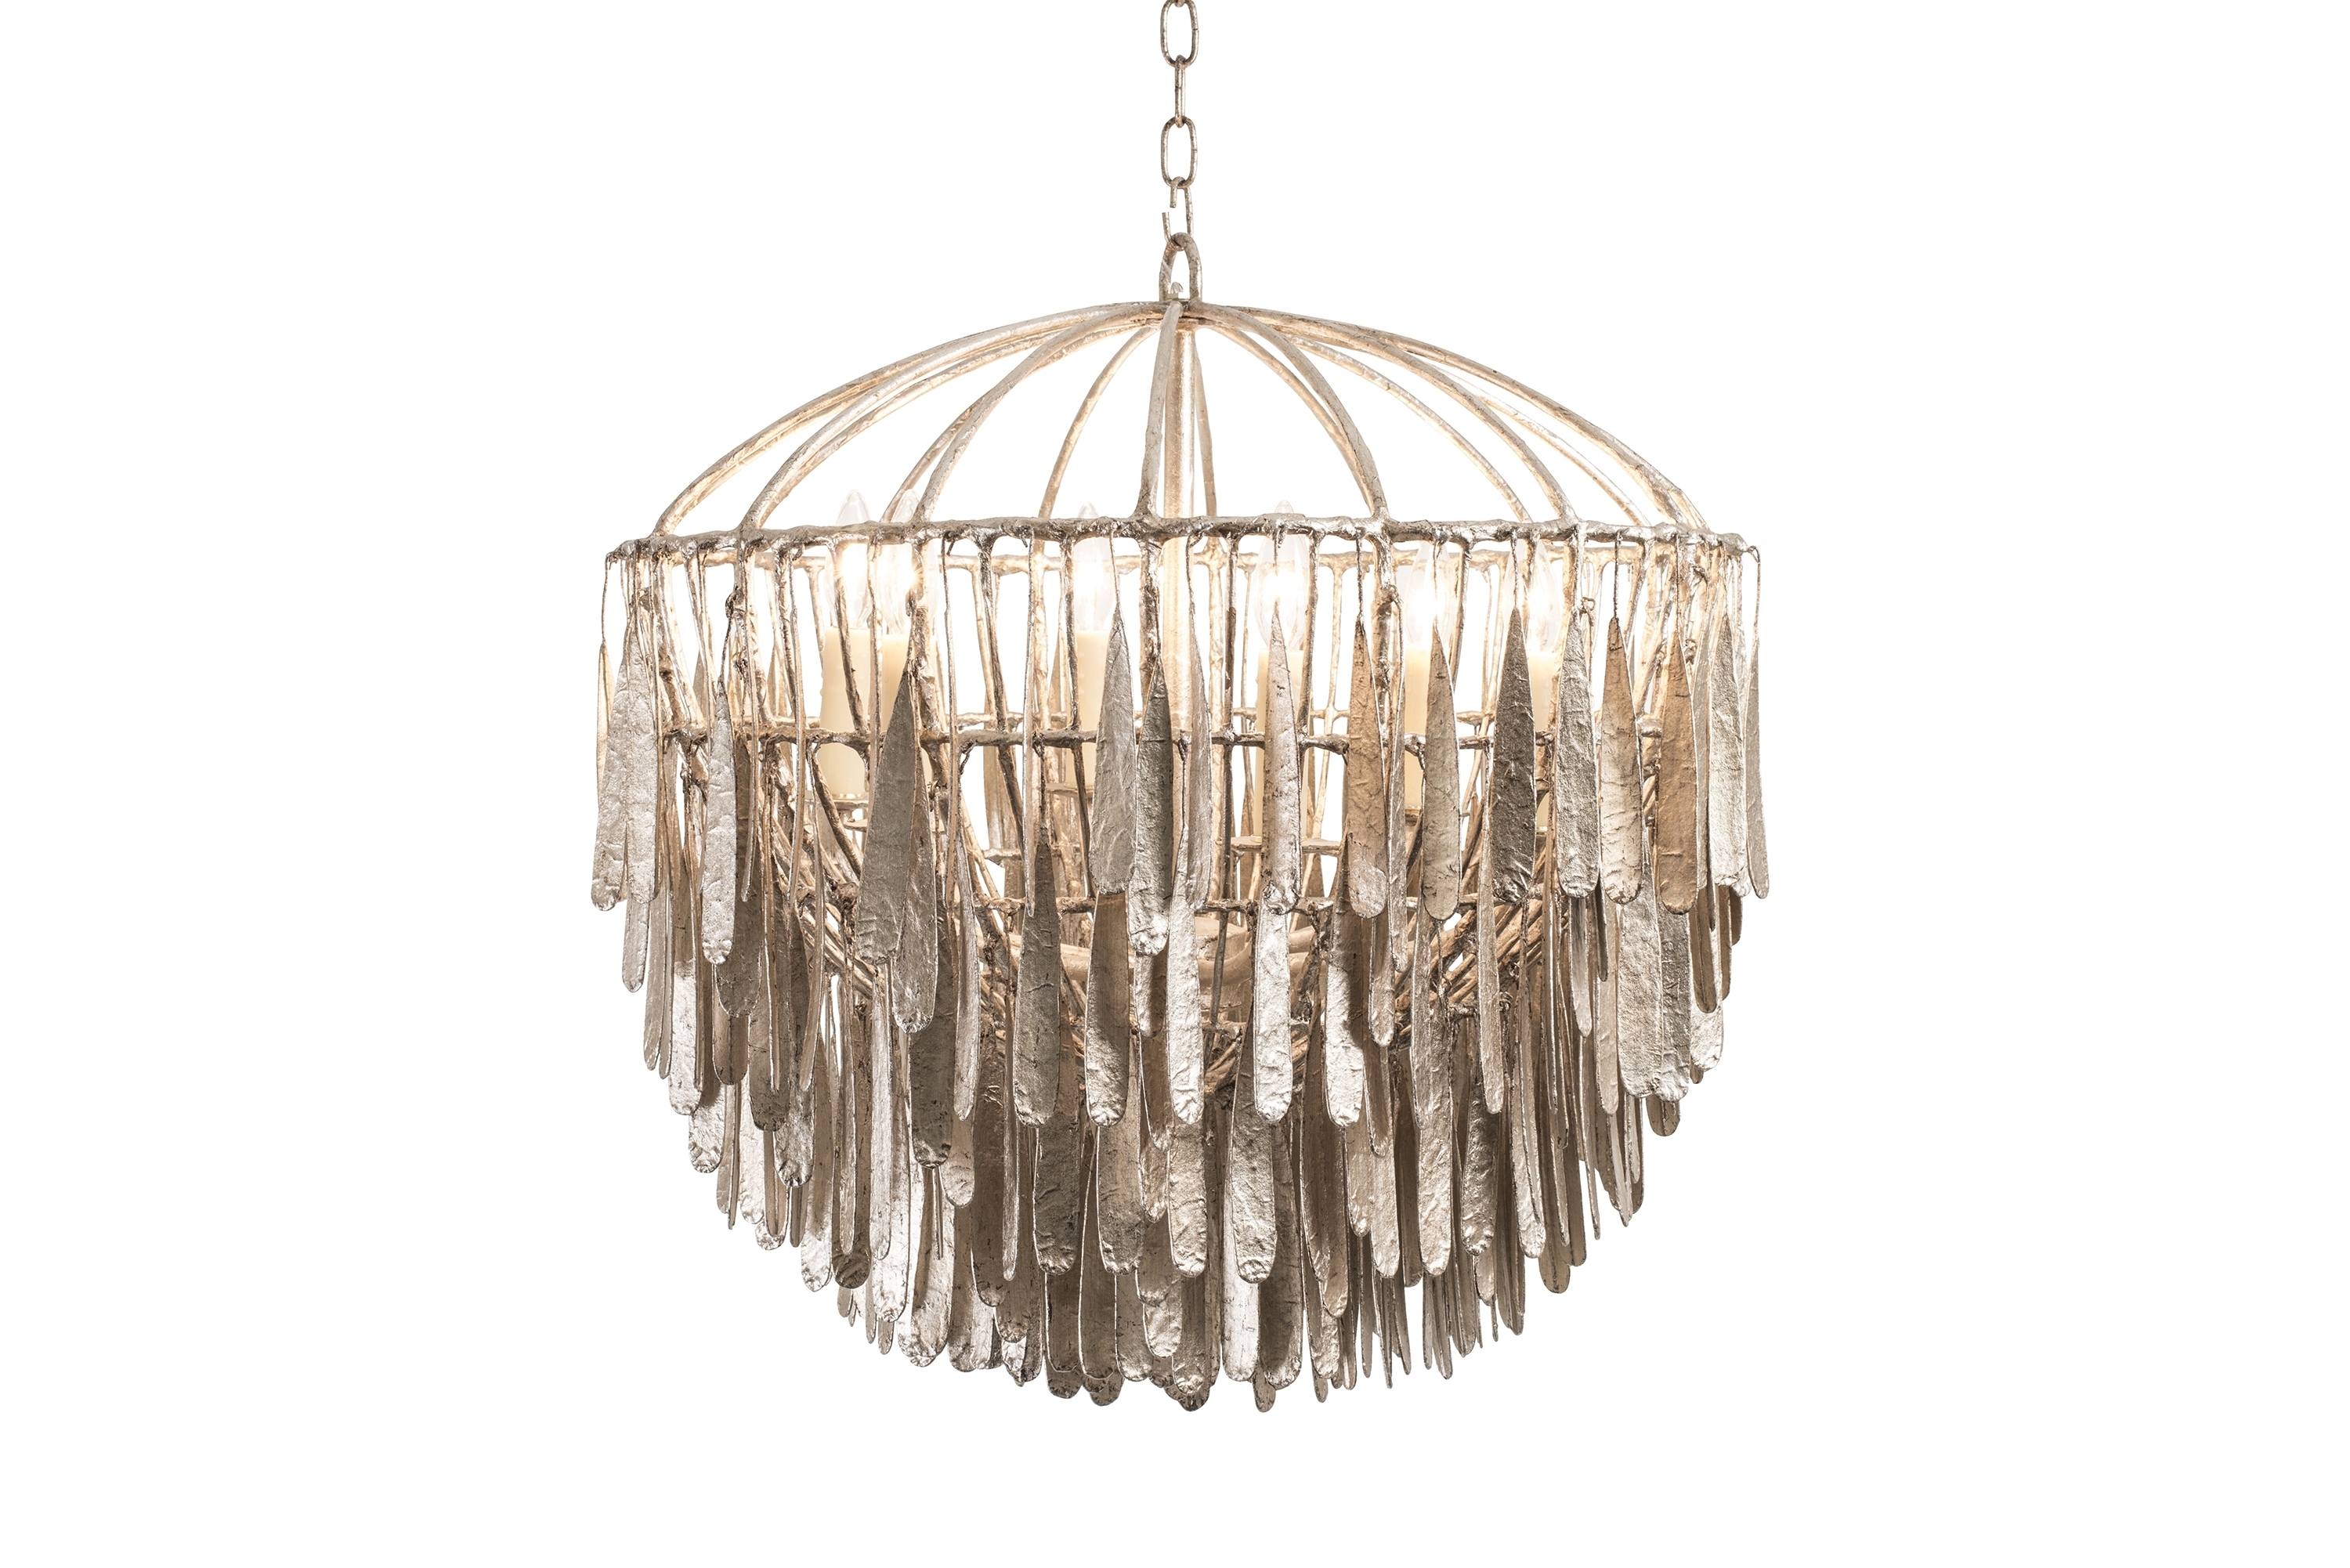 Cage Chandeliers For Best And Newest Modern Round Chandeliers (View 13 of 20)